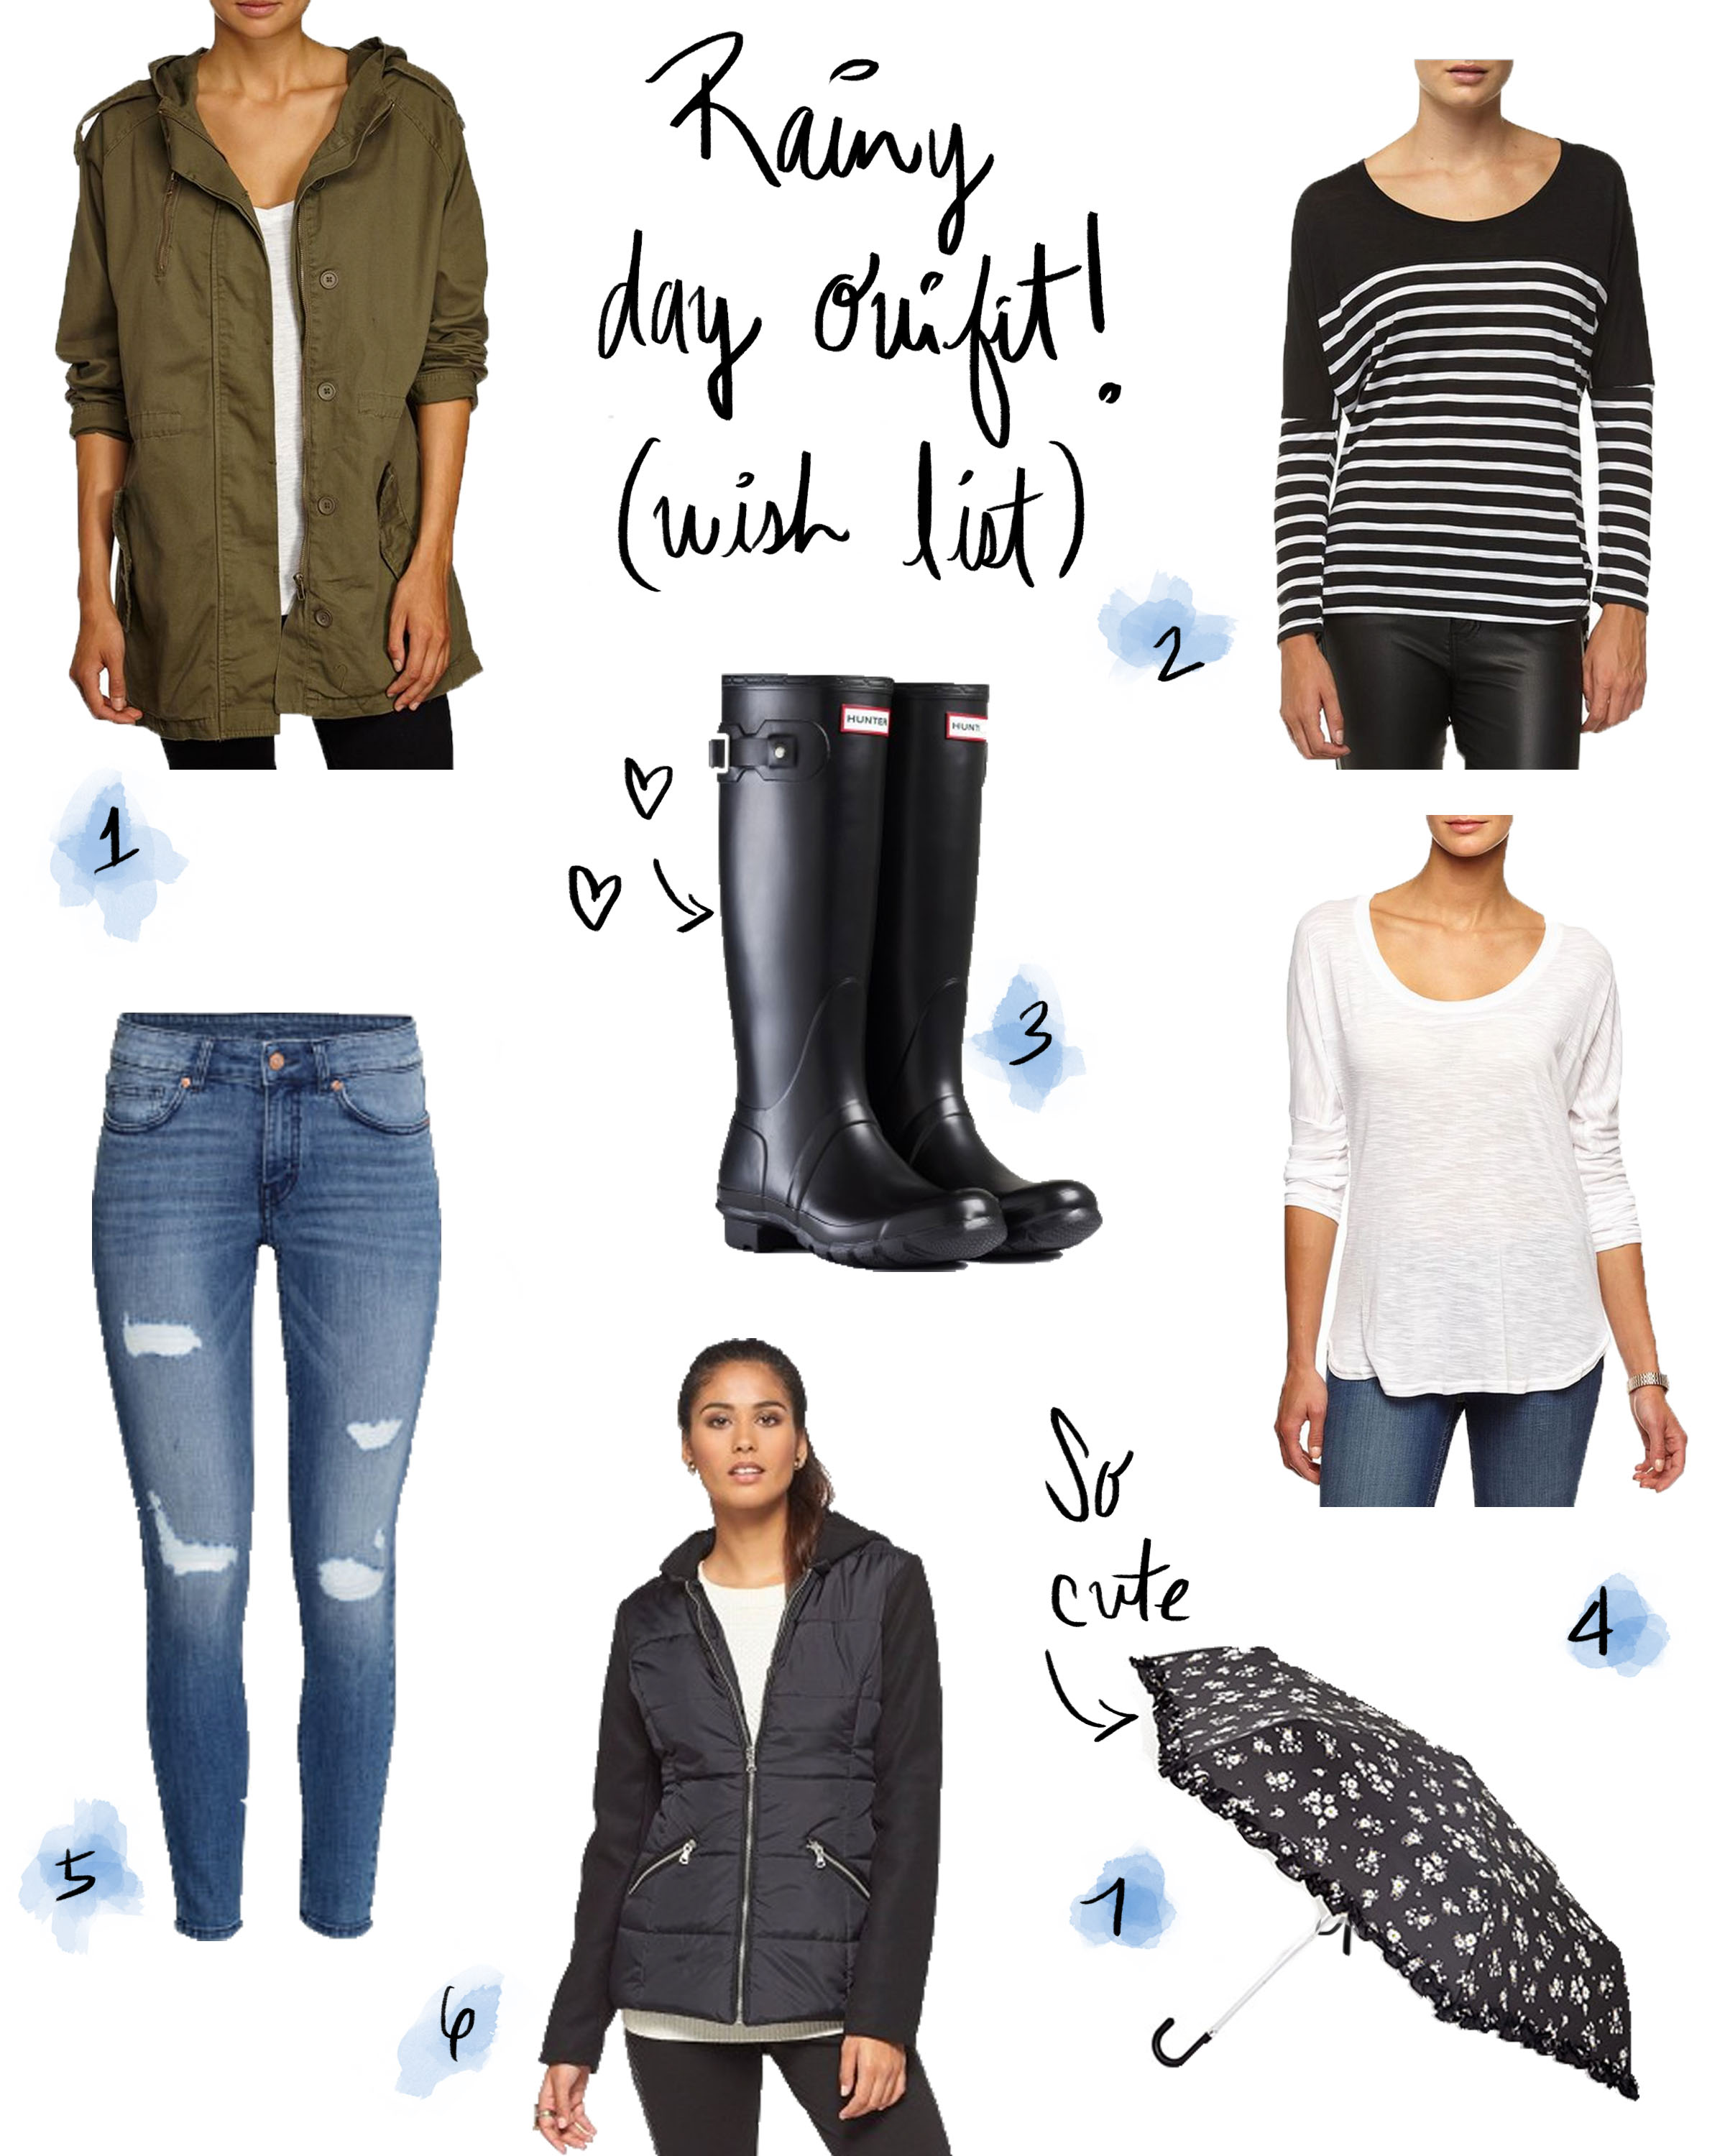 RainOutfitWishList